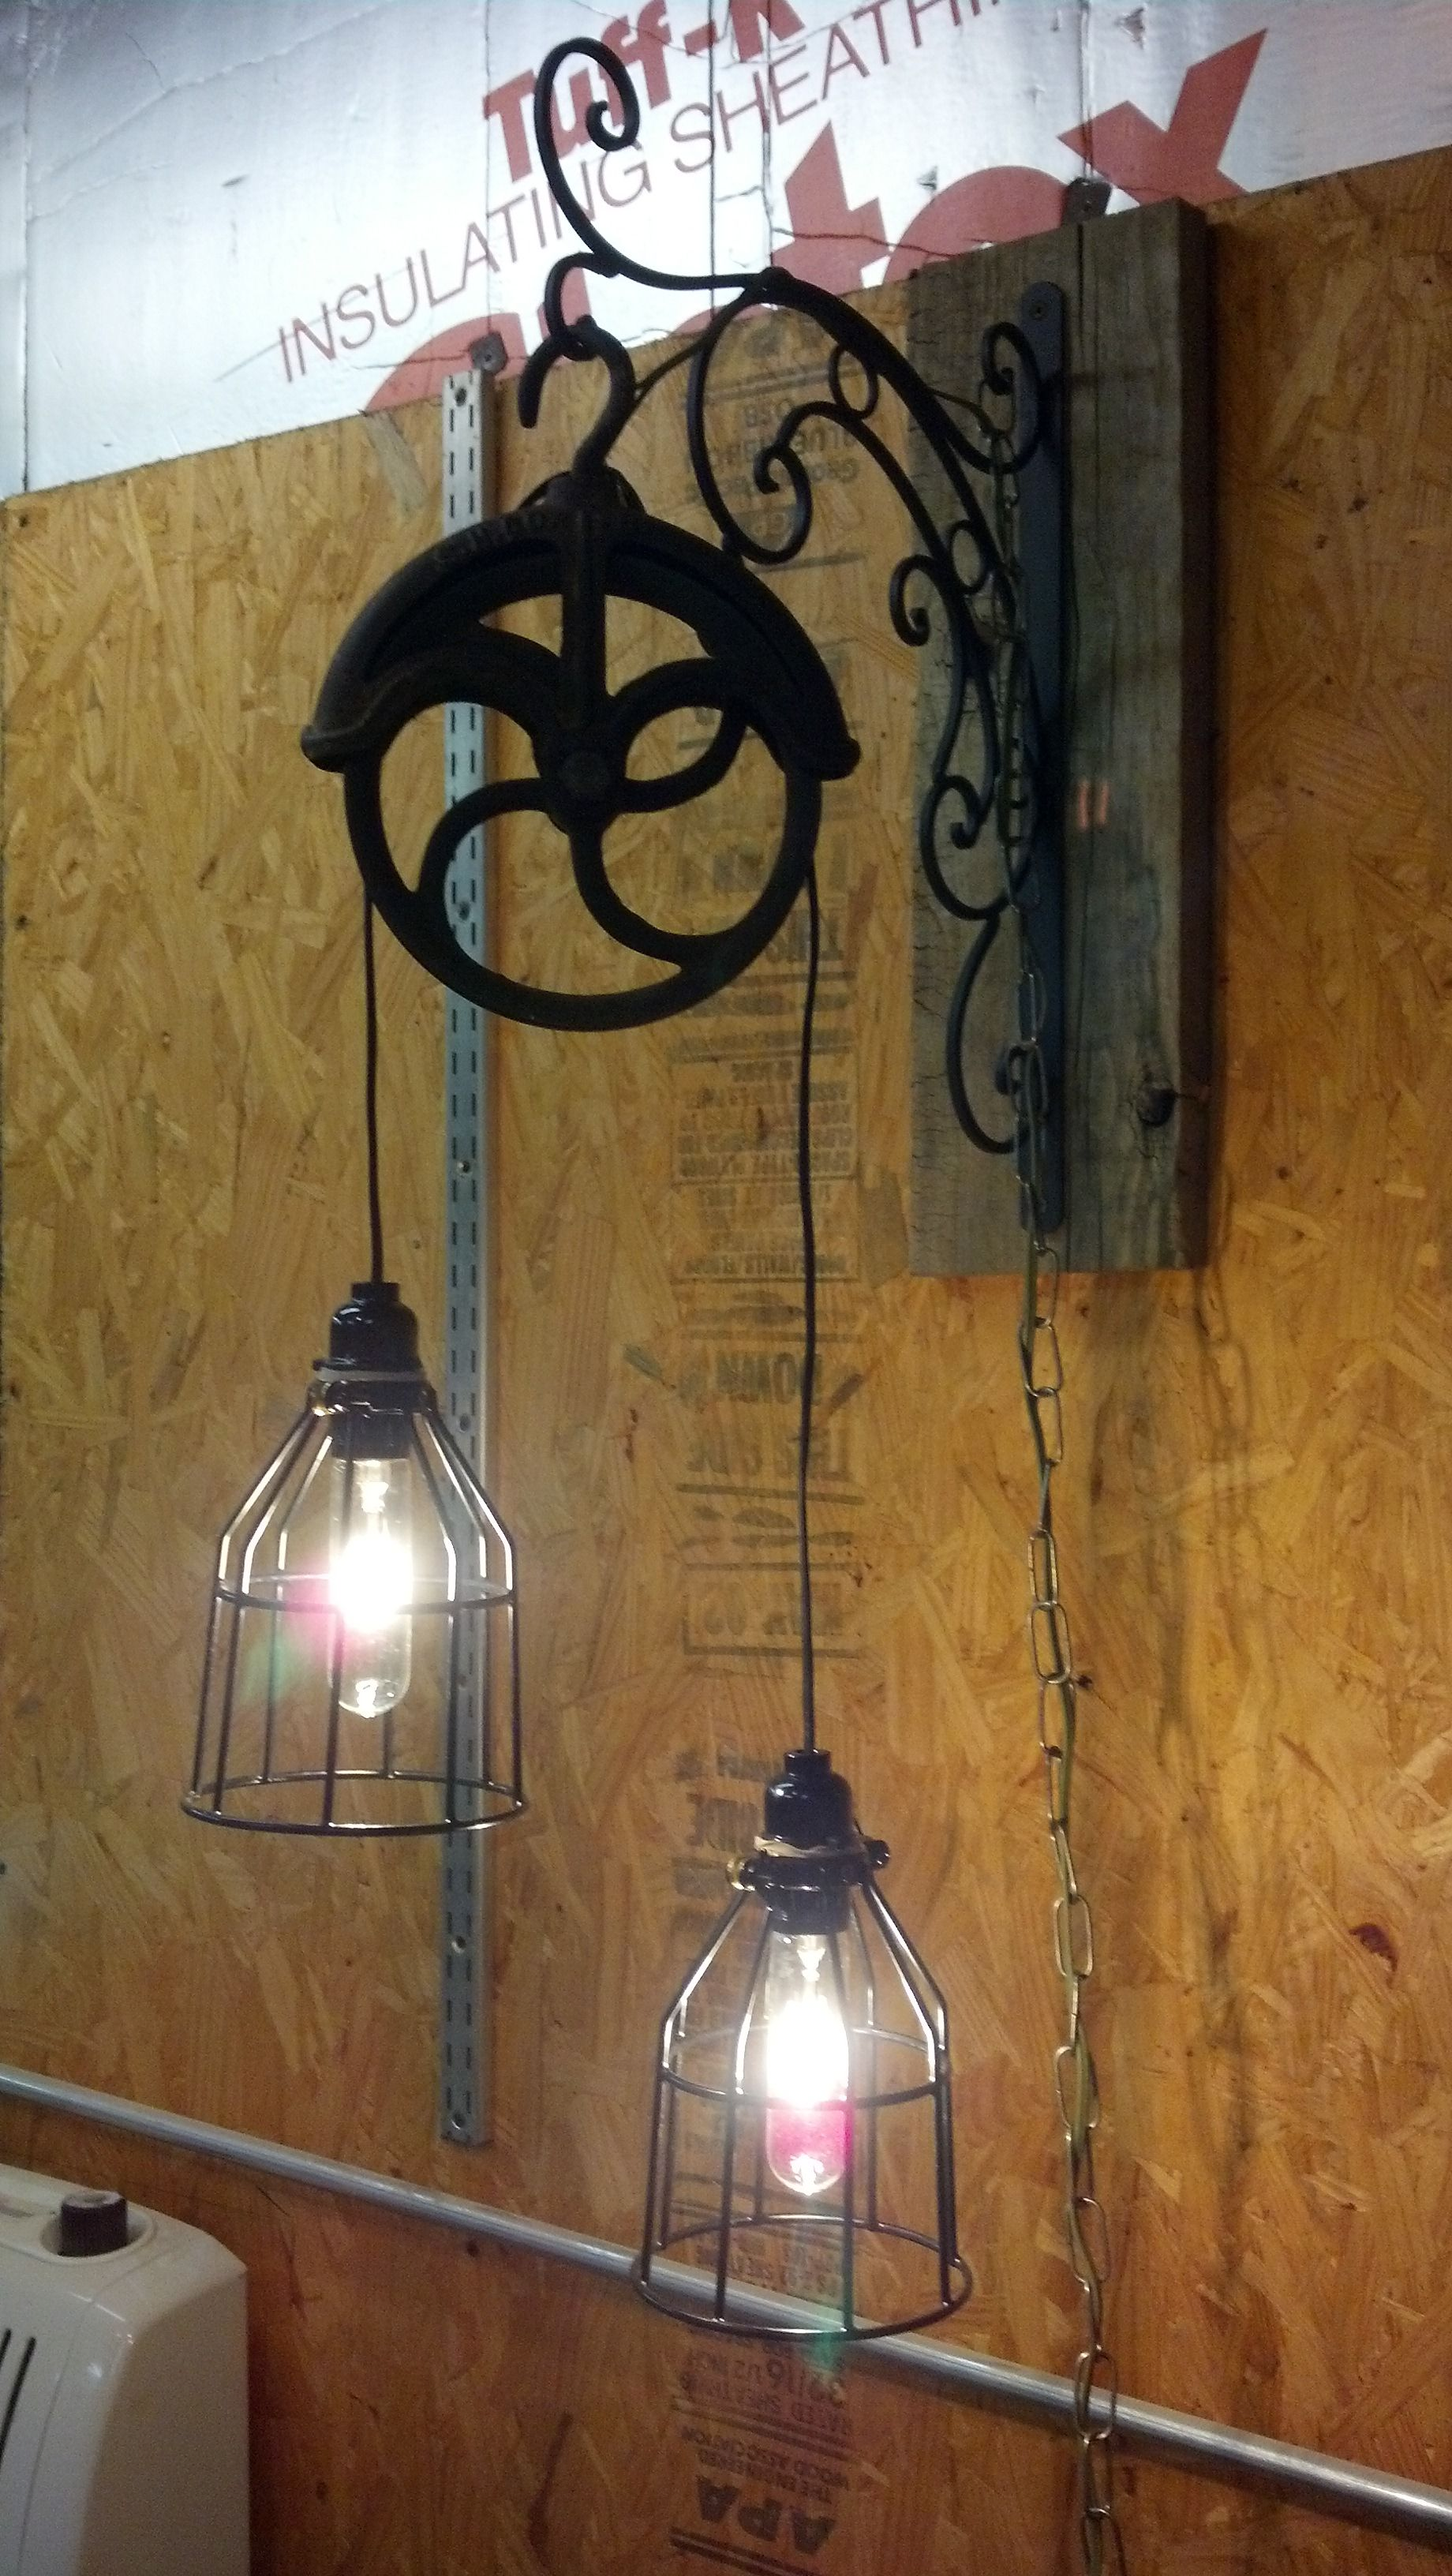 pulley lighting. Light Fixture Made From Old Pulley. LOVE PULLEYS, SO PRACTICAL AND BEAUTIFUL WHEN USED AS SHOWN. Pulley Lighting I